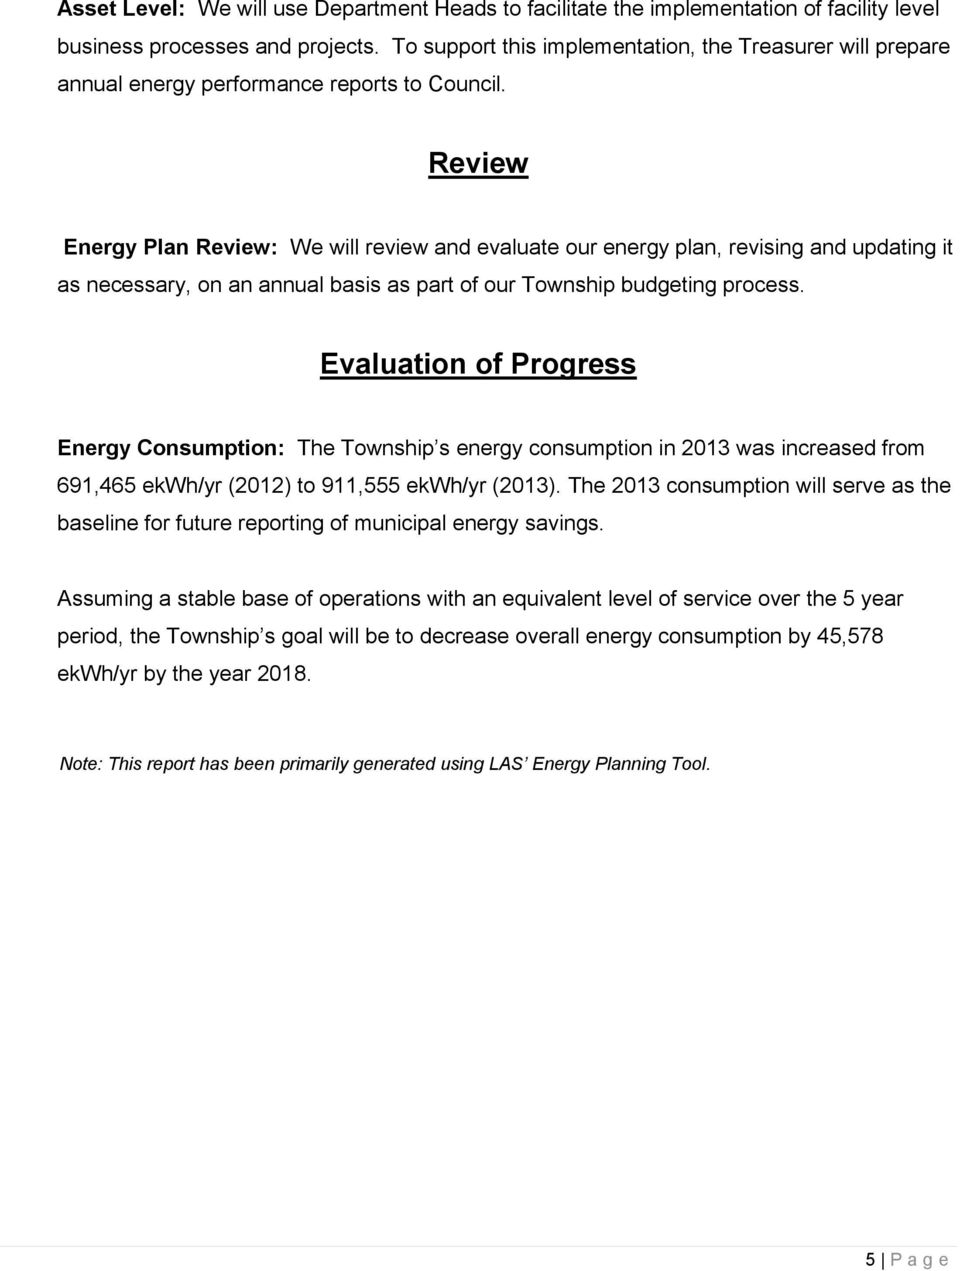 Review Energy Plan Review: We will review and evaluate our energy plan, revising and updating it as necessary, on an annual basis as part of our Township budgeting process.